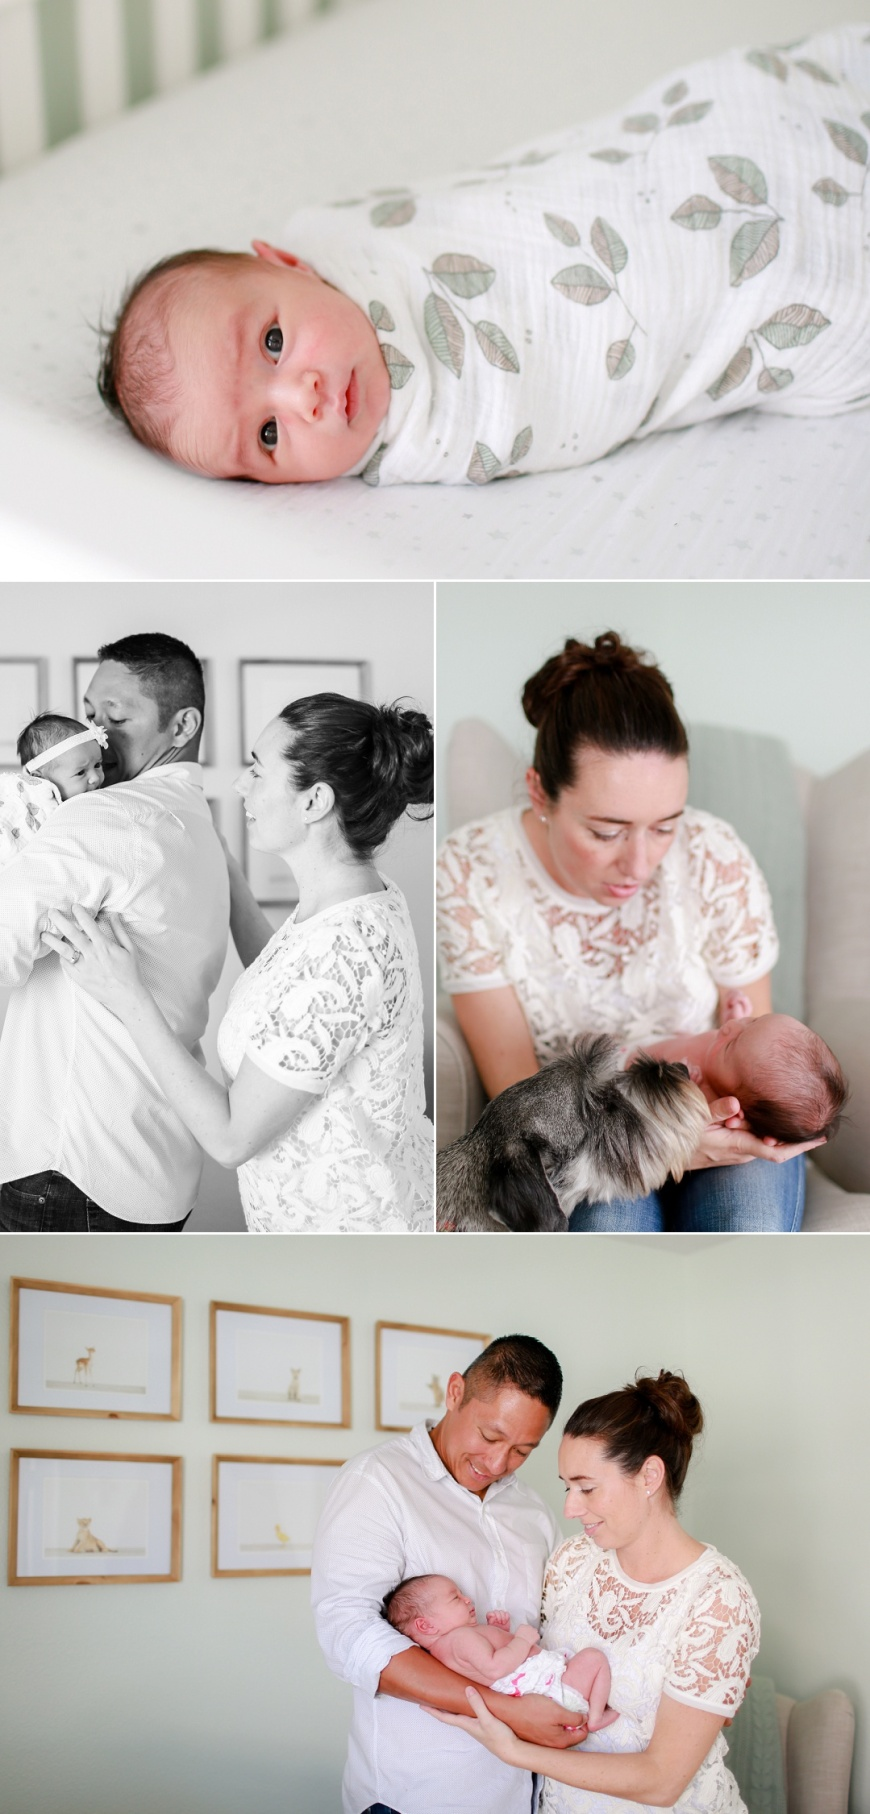 Novato-Newborn-Photographer_0111.jpg